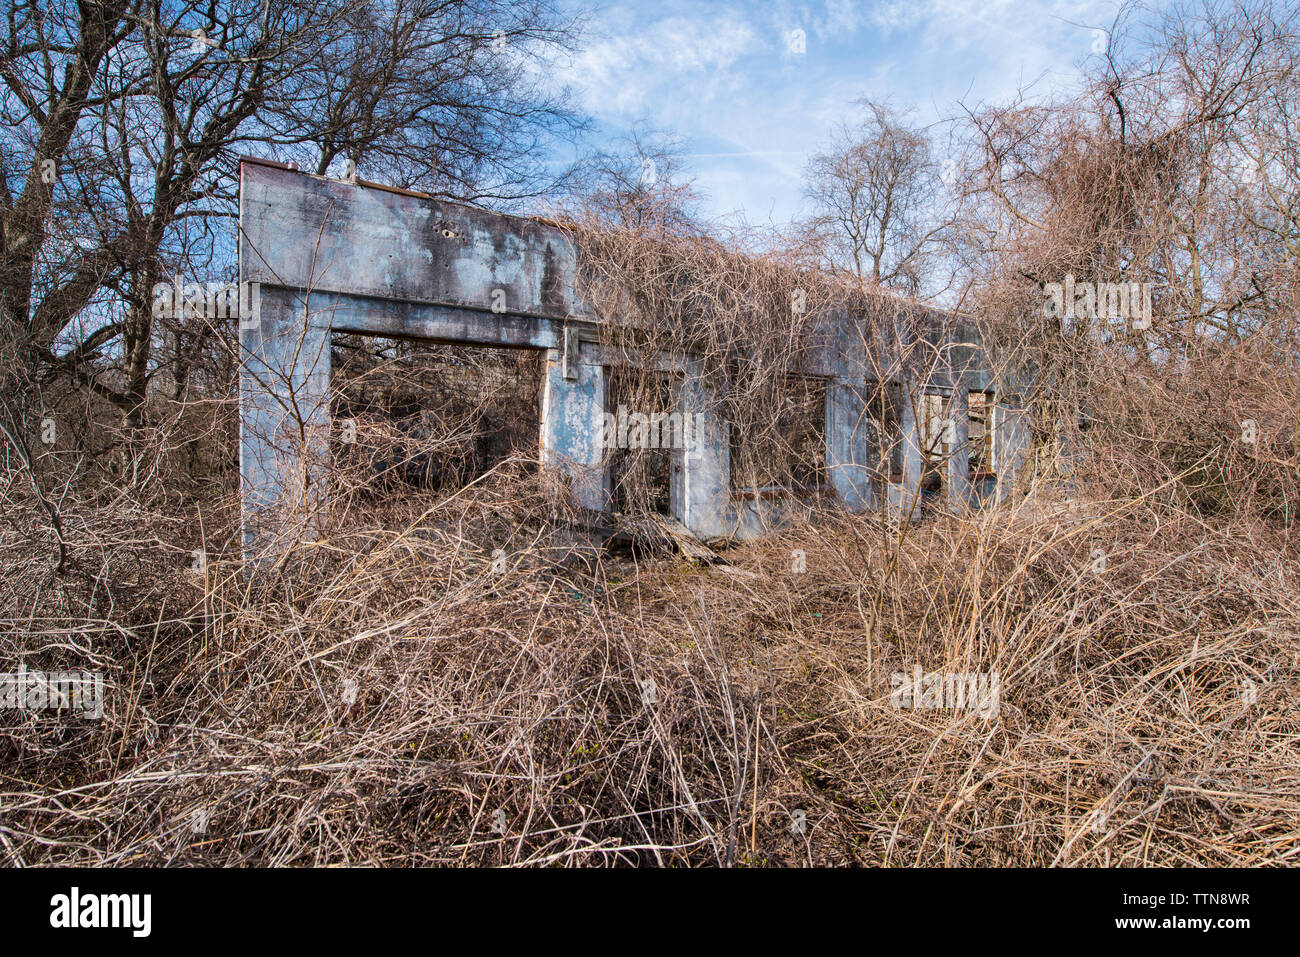 Abandoned building by bare trees and dead plants in forest - Stock Image